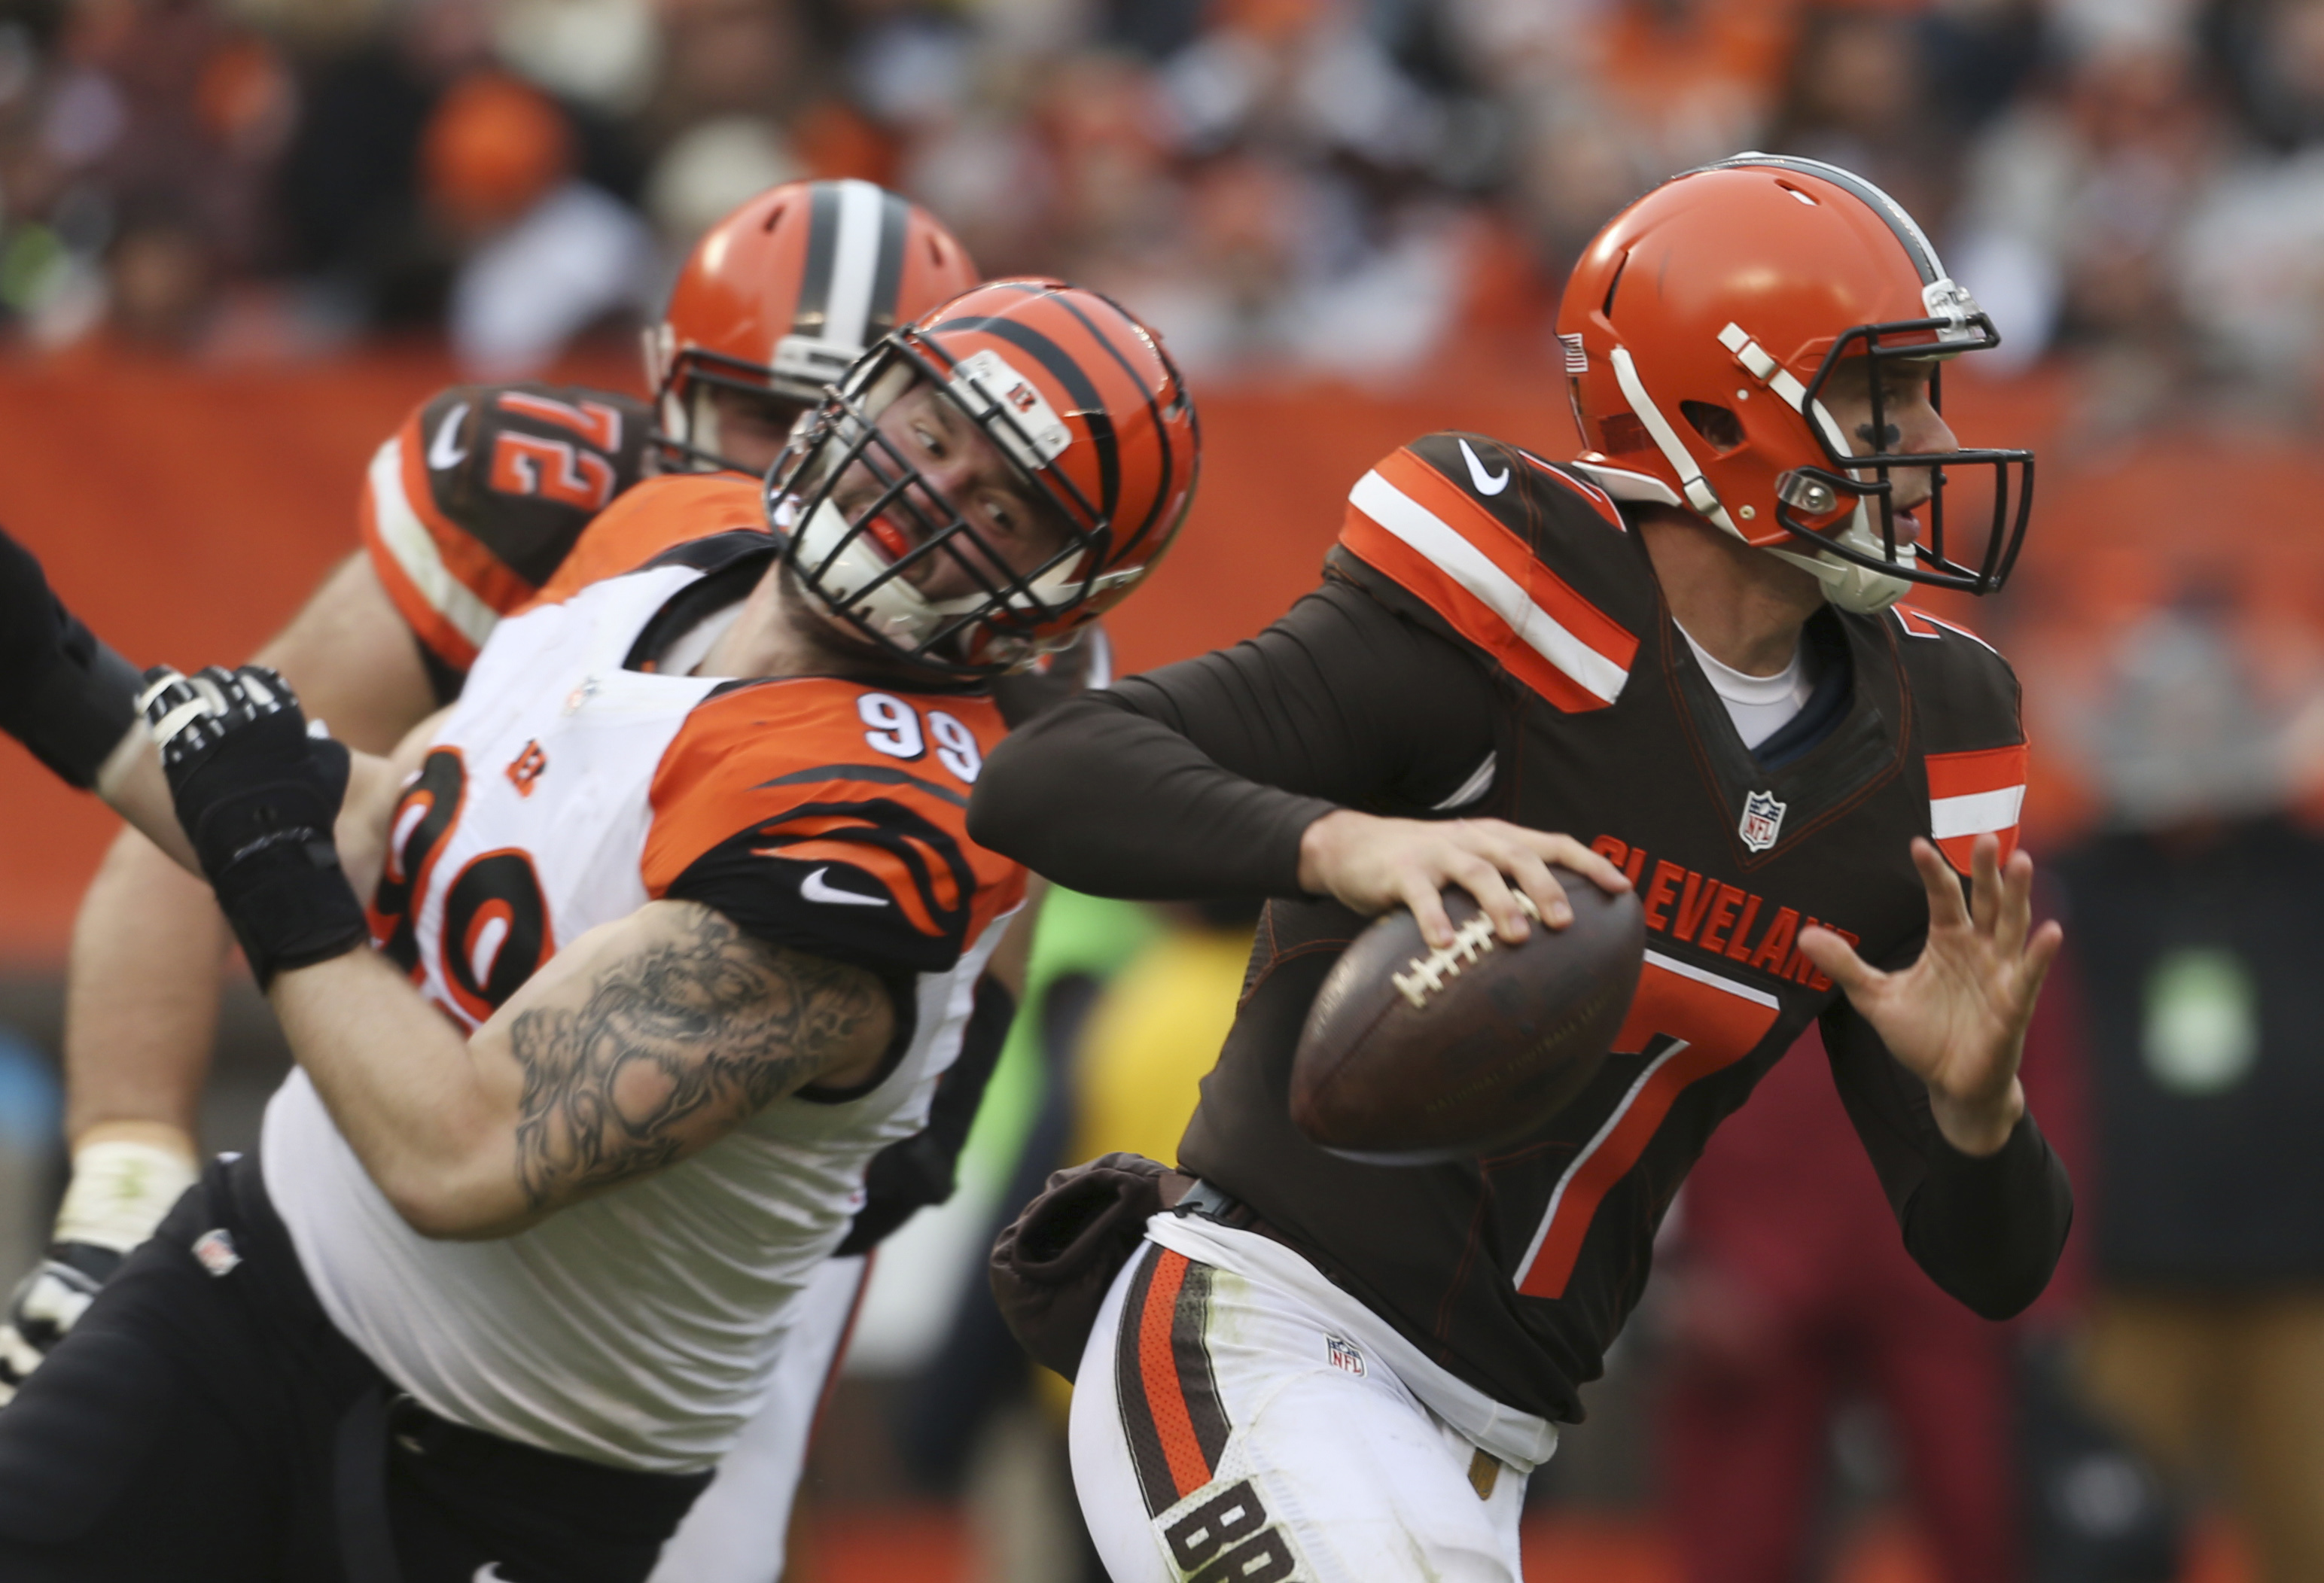 FILE - In this Dec. 8, 2015, file photo, Cleveland Browns quarterback Austin Davis (7) looks for a receiver as Cincinnati Bengals defensive end Margus Hunt (99) closes in during an NFL football game in Cleveland. The Browns face the Pittsburgh Steelers on